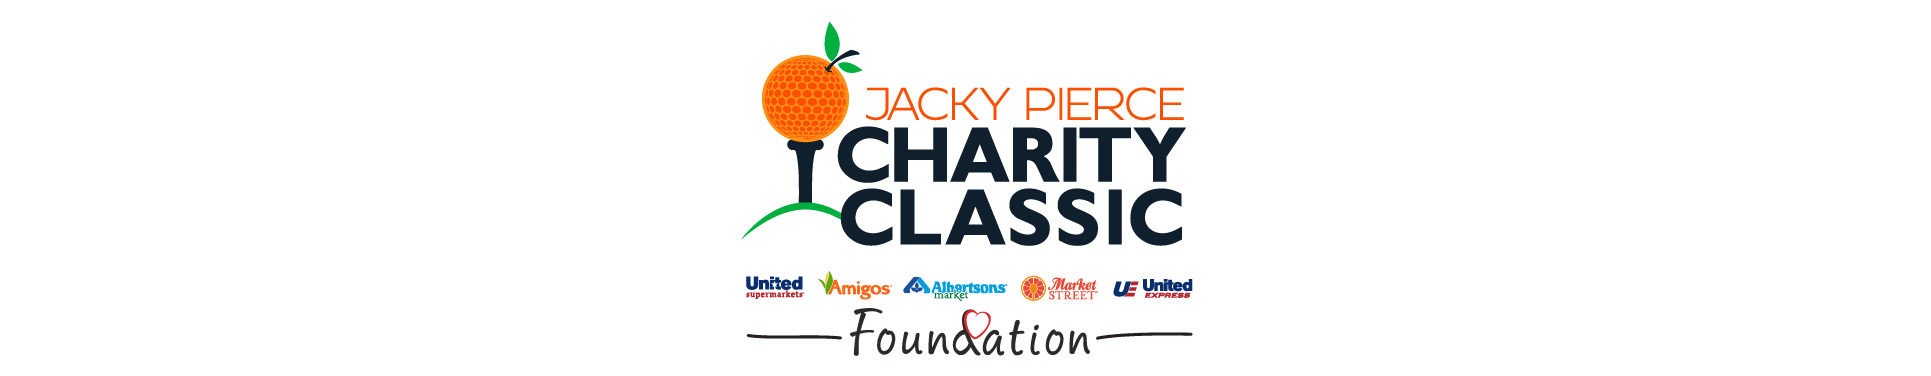 2020 Jacky Pierce Charity Classic